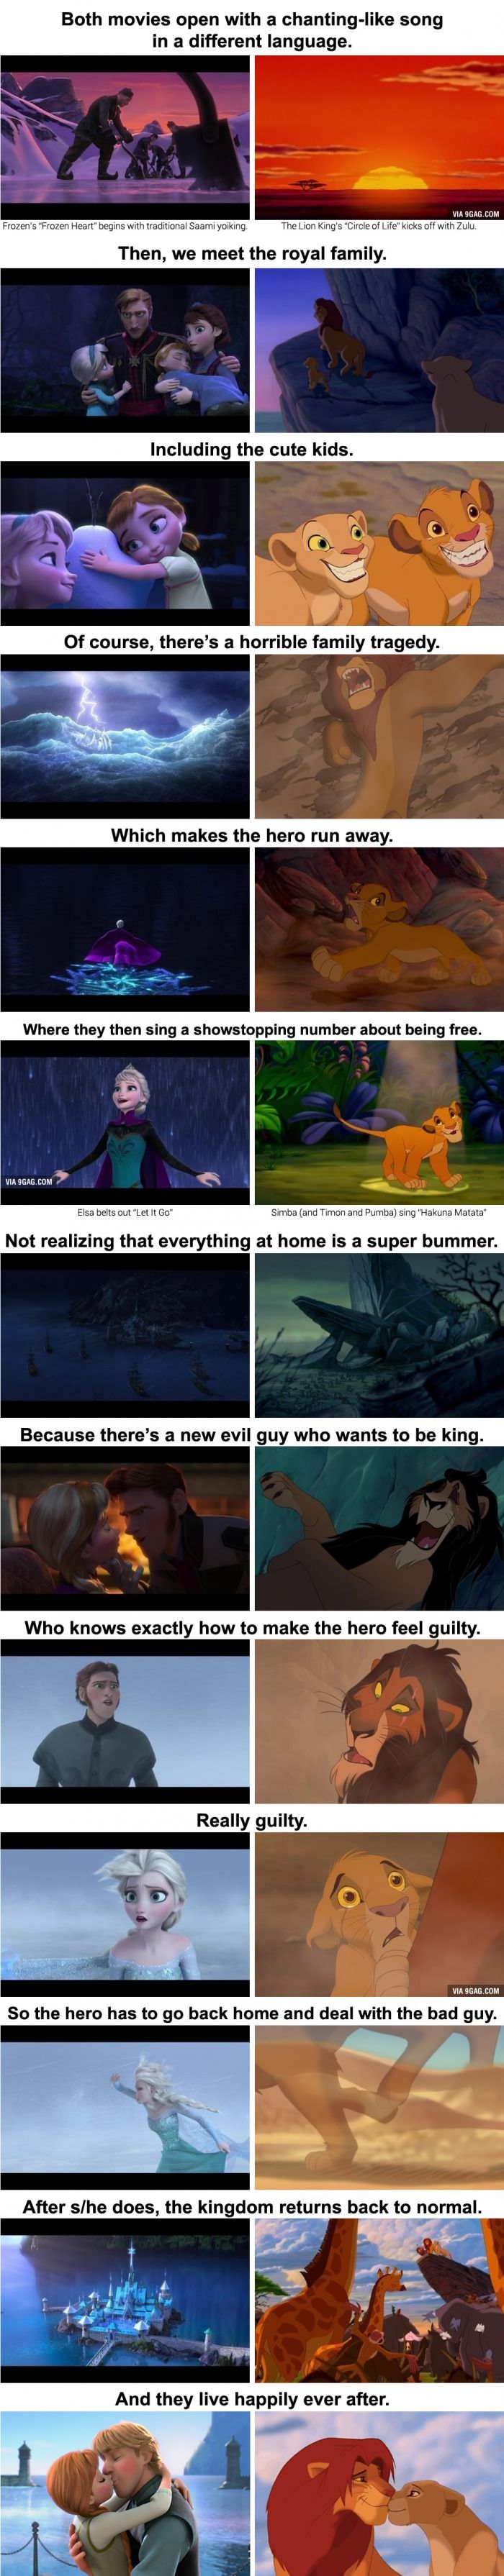 "SPOILER ALERT! Here Is Definitive Proof That ""Frozen"" Is Literally The Same Movie As ""The Lion King"""